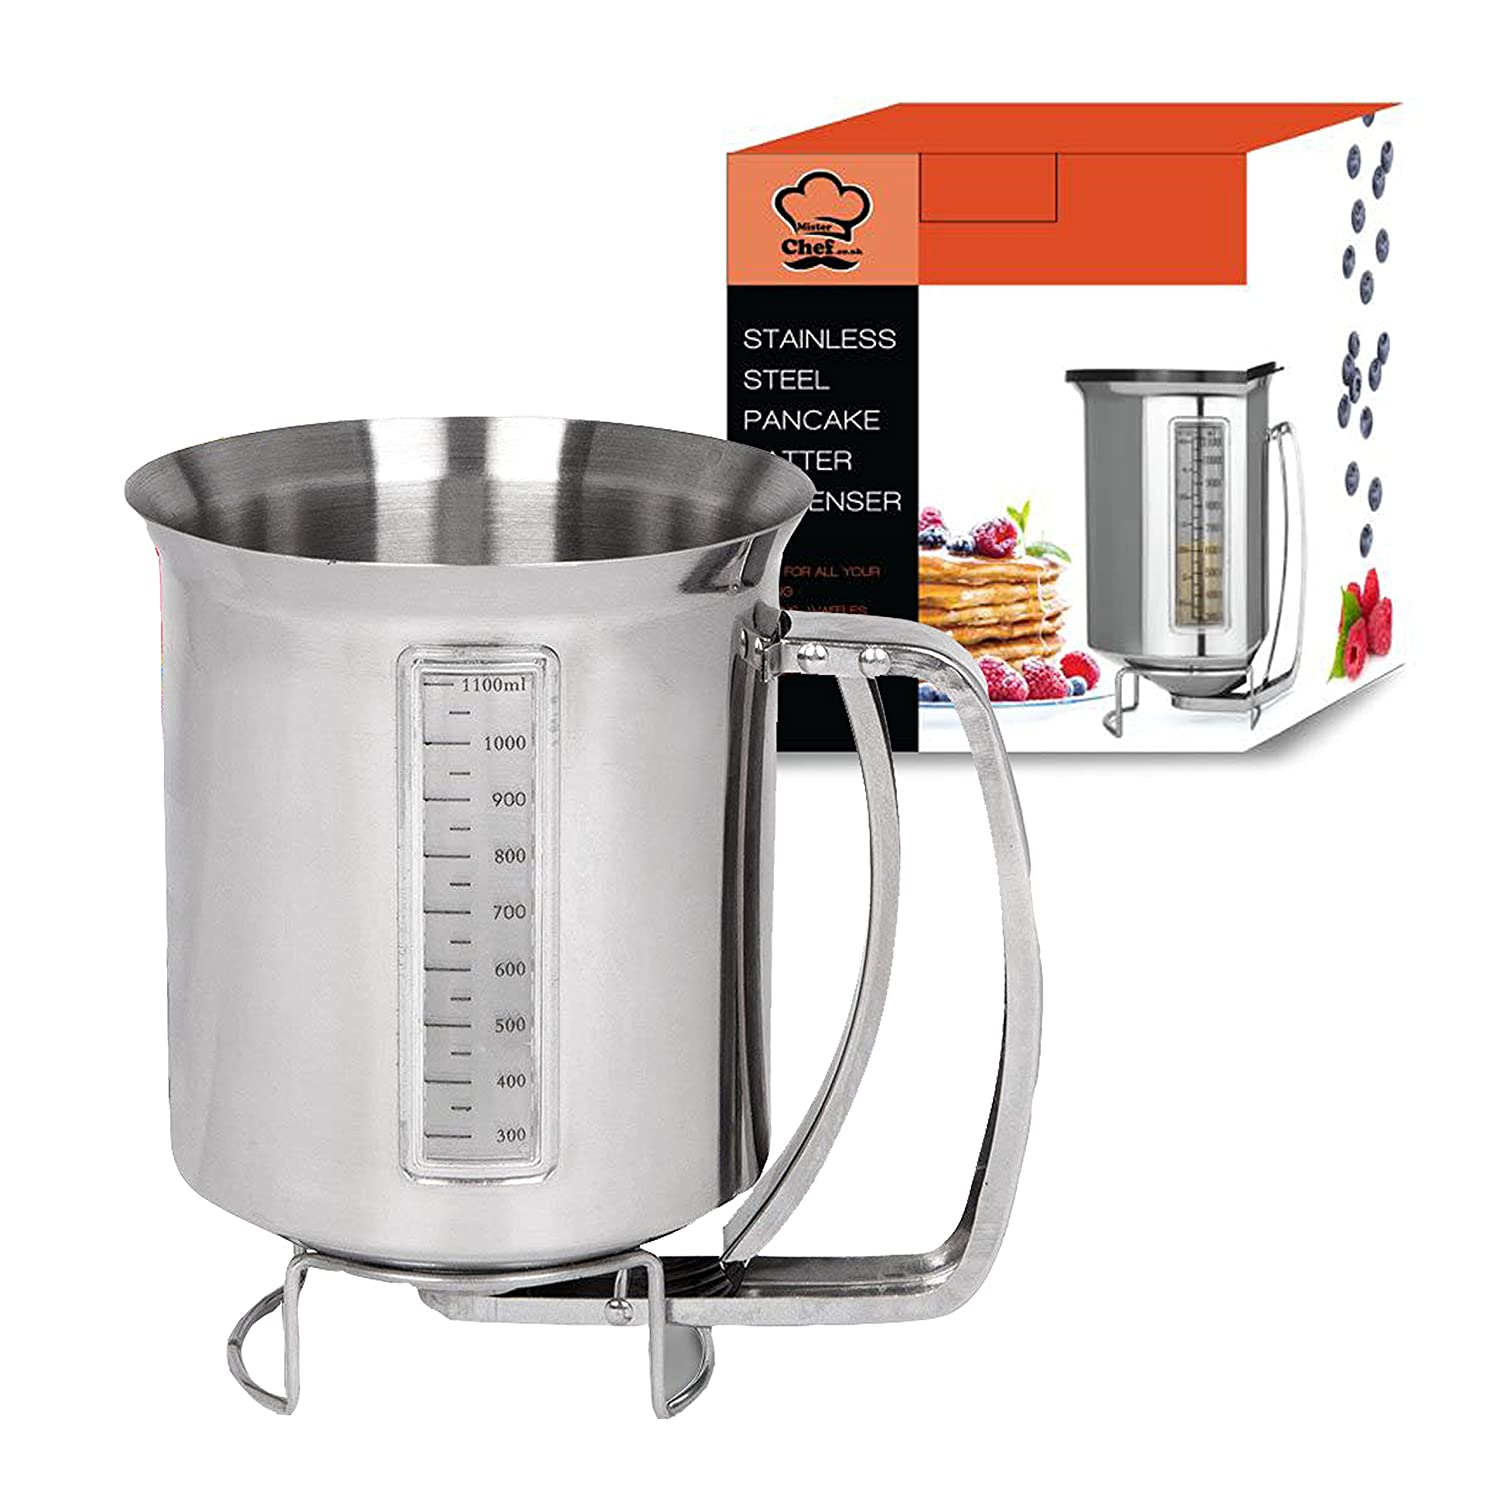 Stainless Steel Pancake Batter Dispenser with Measuring Label: Ideal for Baking Cupcakes, Waffles, Crepes, Muffins, Cake or any Battery mix + FREE PLASTIC COVER TO STORE YOUR CONTENTS – Silver Aluminium – Capacity of 1200ml (1.2L) - 2 Year Warranty - by M